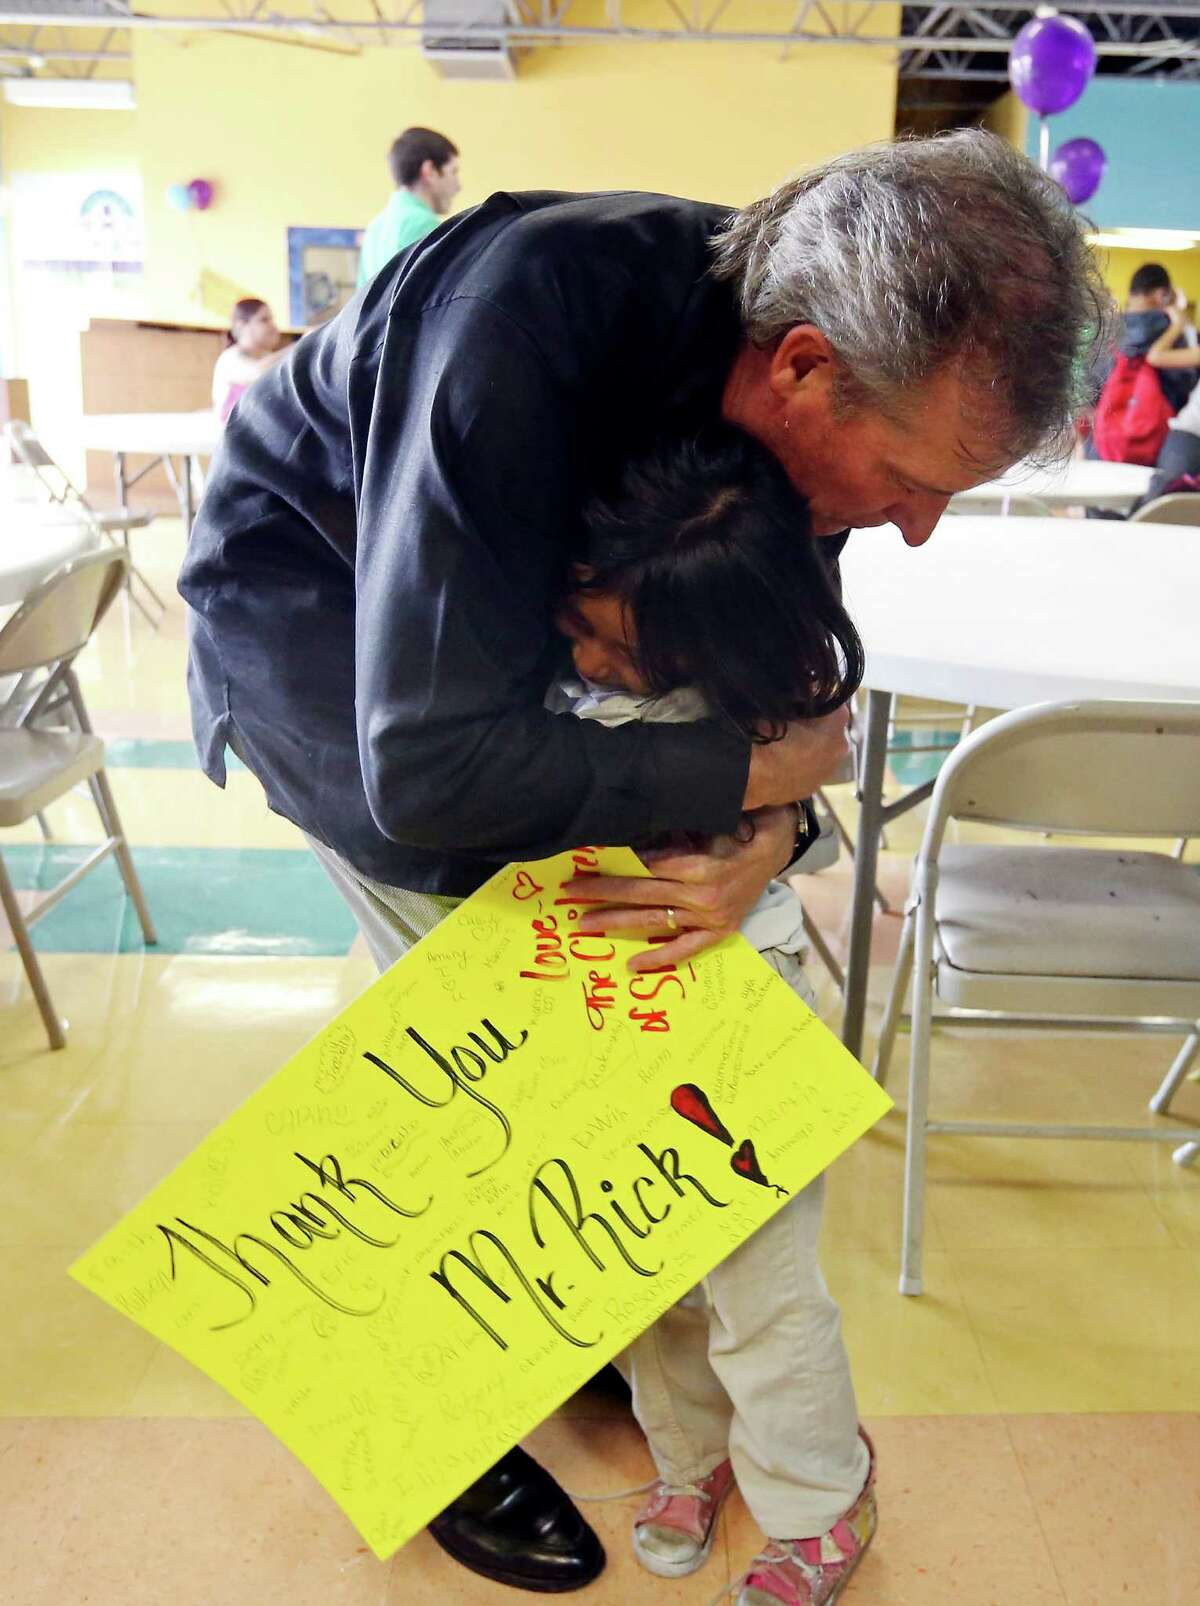 Rick Cavender (left) hugs Kayla Segovia, 6, after performing with The Rick Cavender Band during a free Rock 'N Roll Pizza Party April 6, 2015, at SA Youth's Dan Cook Youth Center.